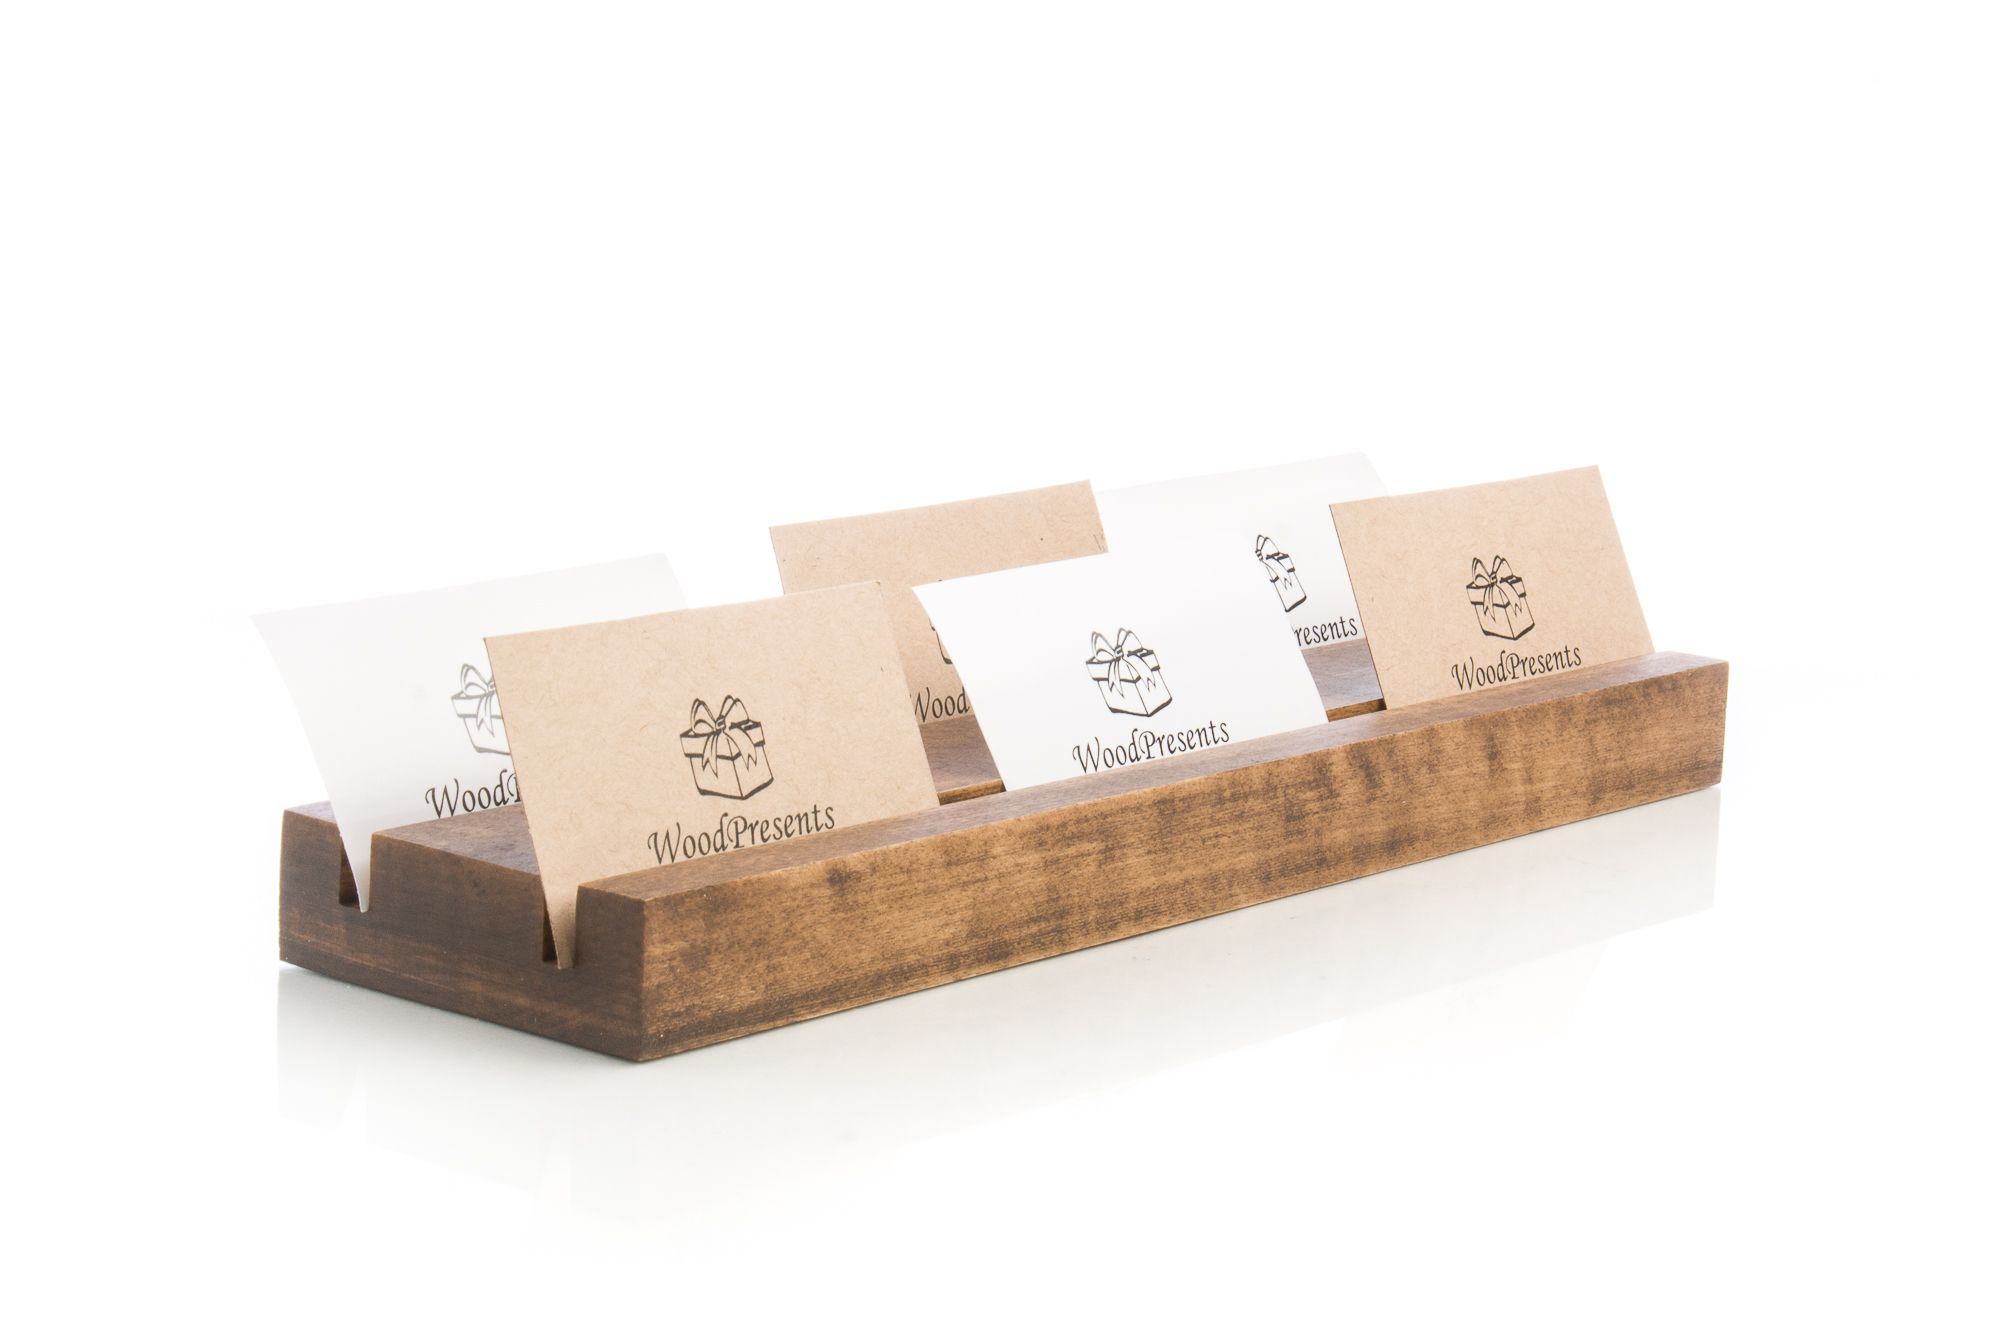 Multiple Business Card Holder Personalized Desk Organizer Etsy Personalized Desk Organization Wood Card Business Card Holders